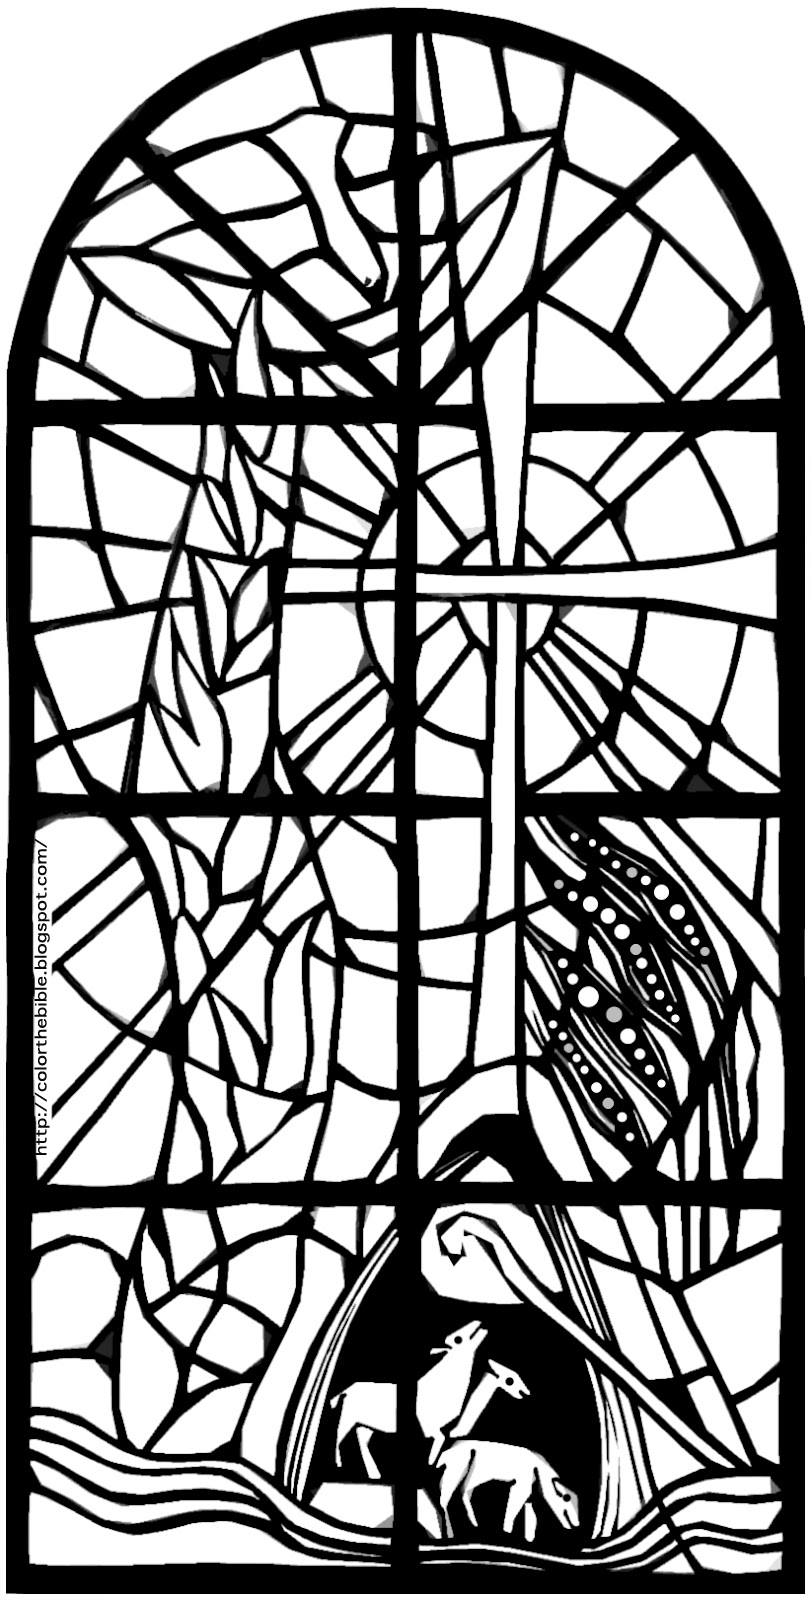 christion stain glass coloring pages | Day of Pentecost | Color The Bible